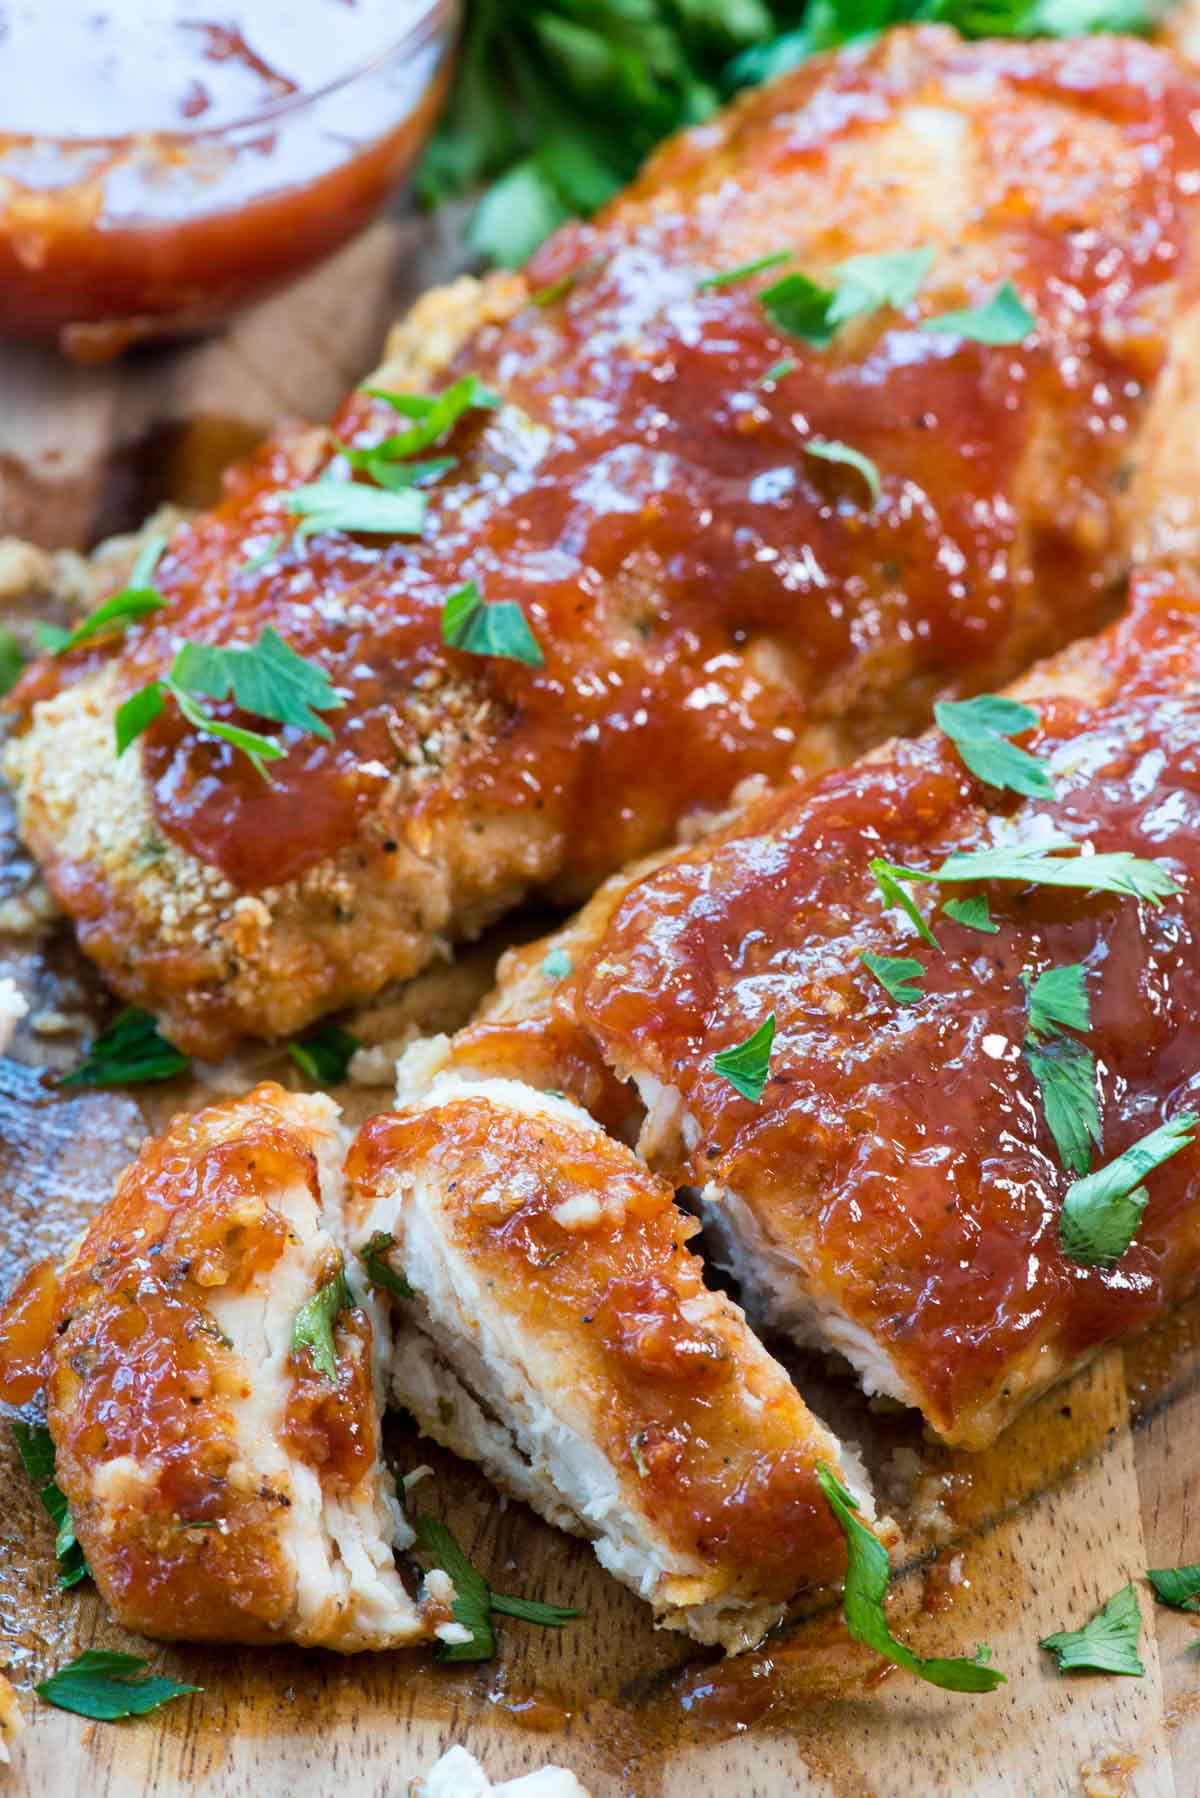 Oven Baked Chicken Recipes  Easy Oven Baked BBQ Chicken Crazy for Crust